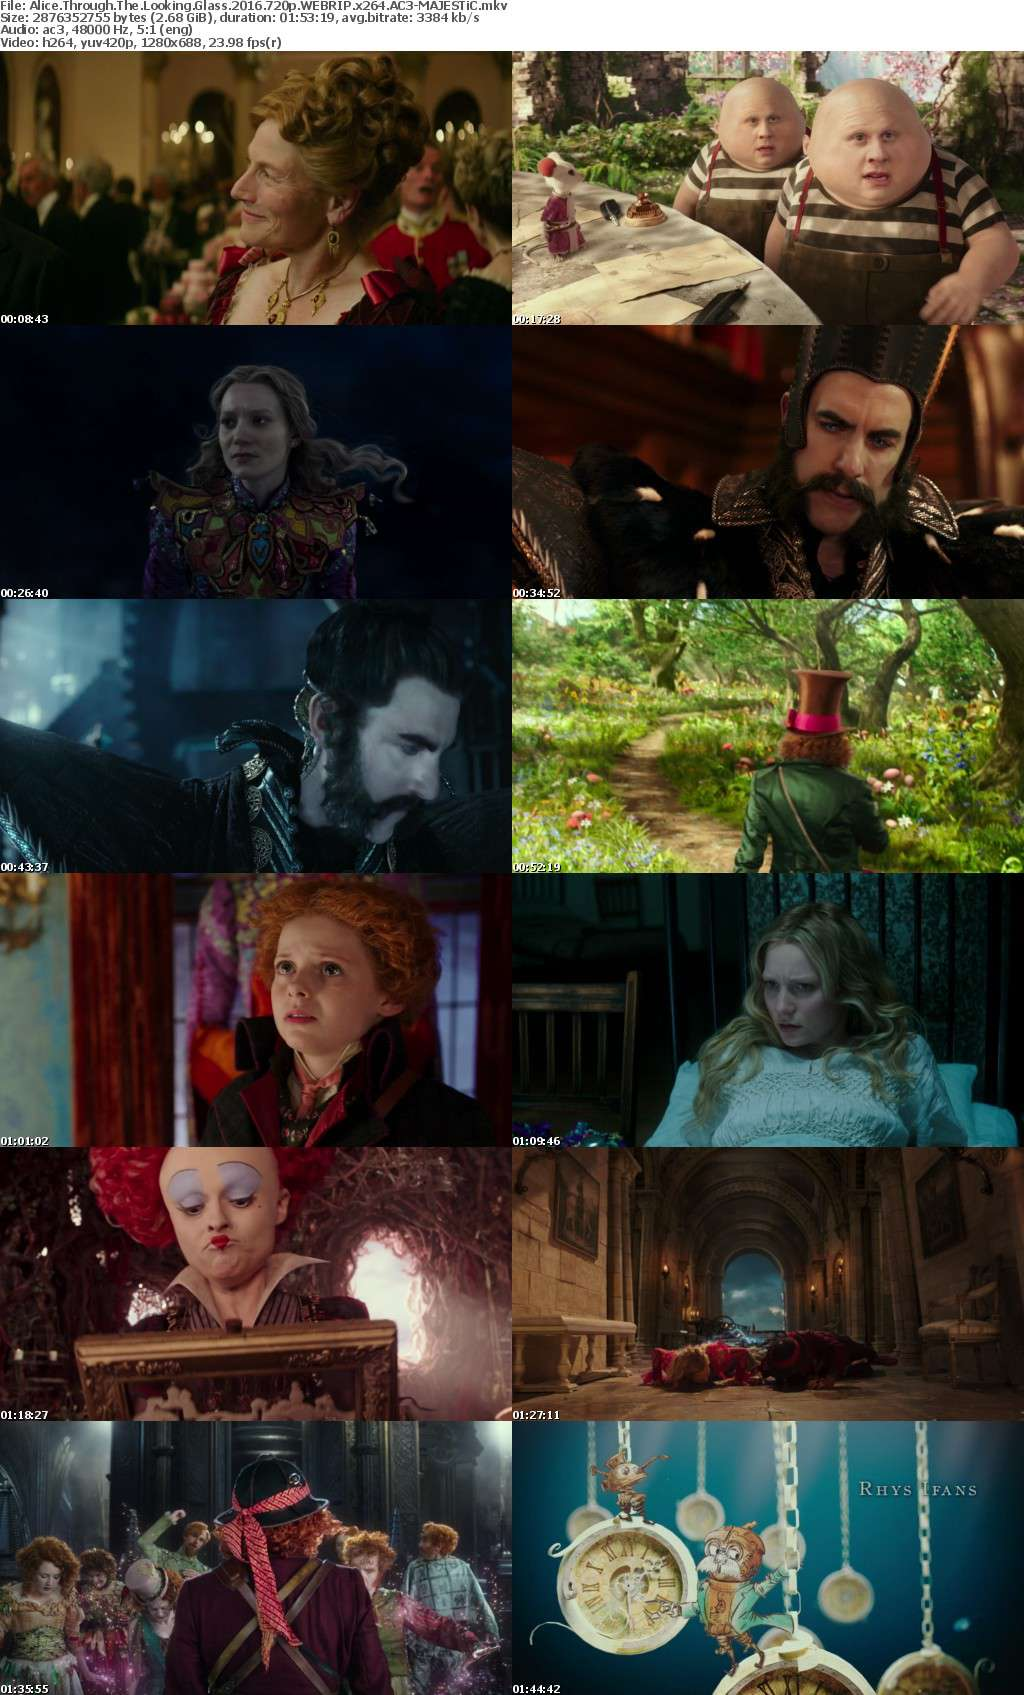 Alice Through The Looking Glass 2016 720p WEBRIP x264 AC3-MAJESTiC